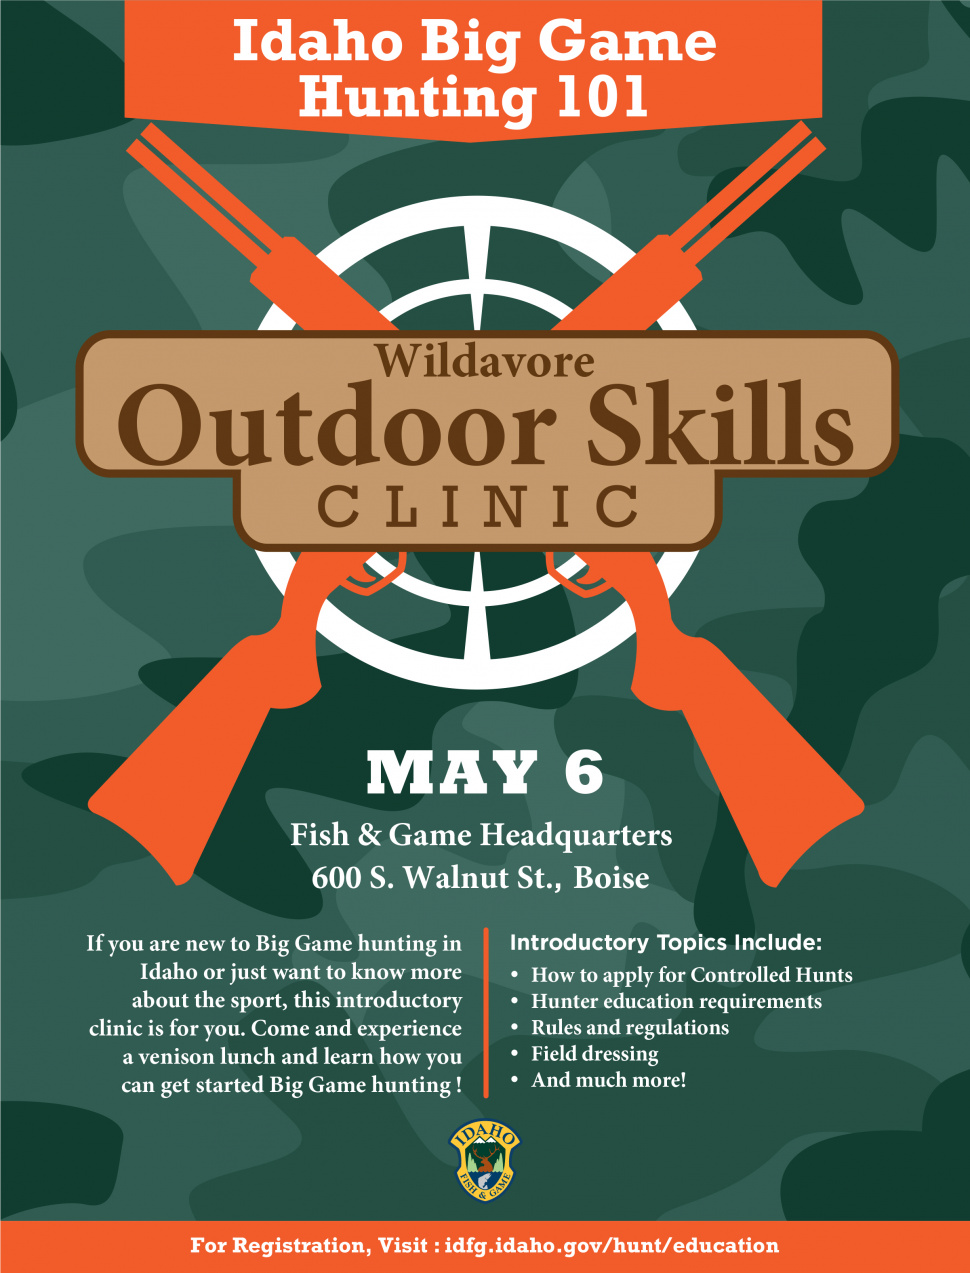 Outdoor skills workshop slated idaho fish and game for Idaho fish and game regulations